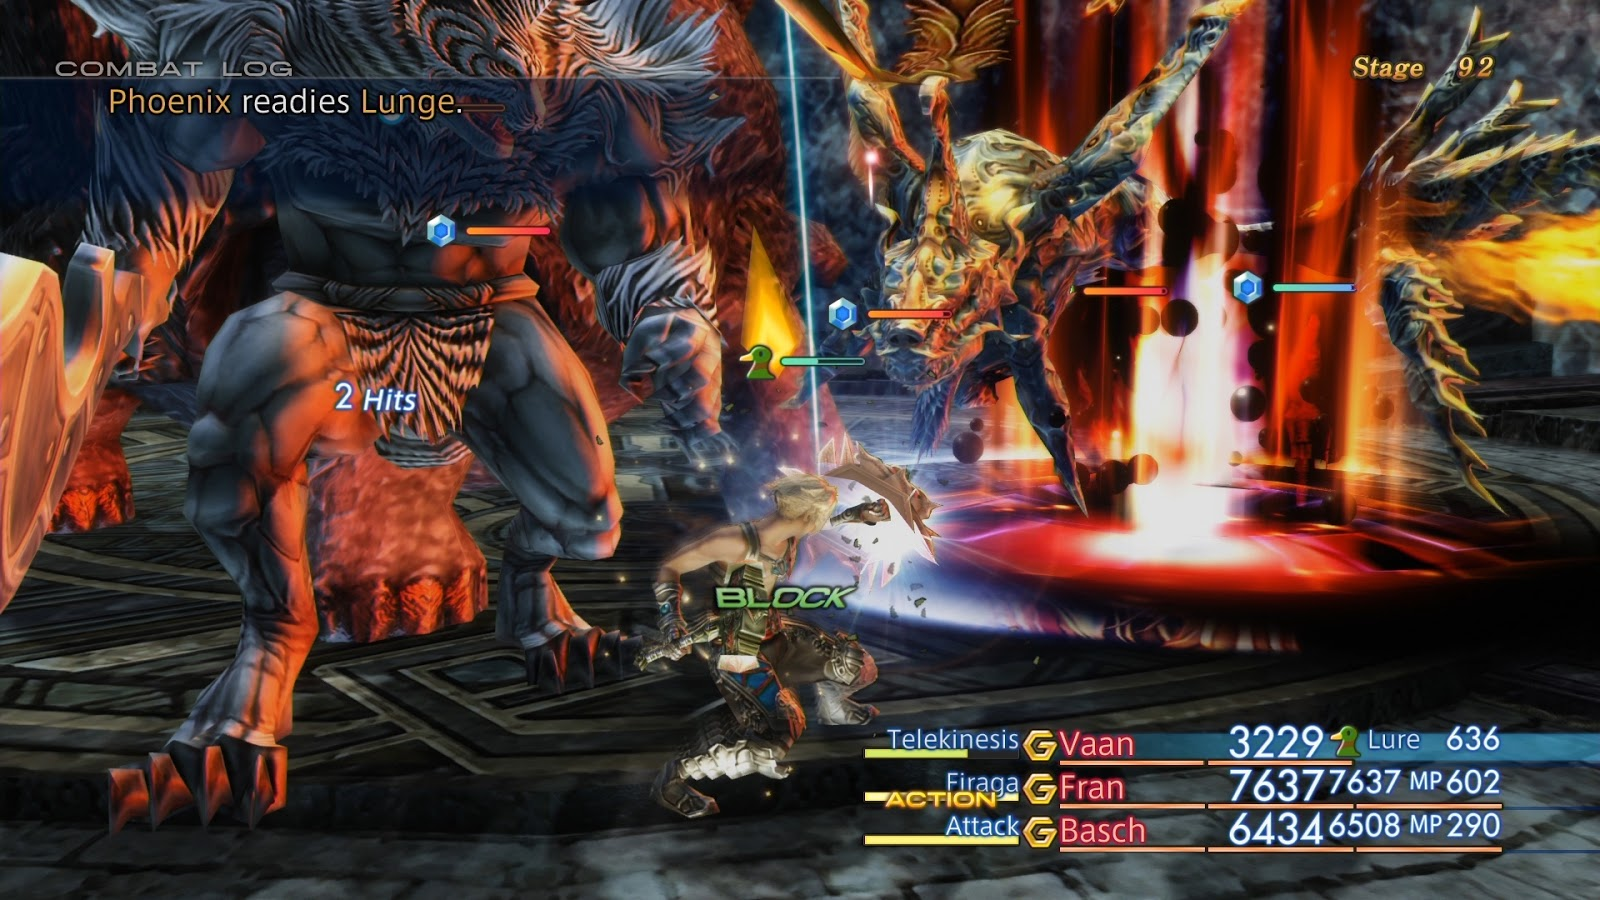 Ffxii takes place in ivalice dalmasca is a kingdom which is smack bang in the middle of a conflict between archadia and rozarria